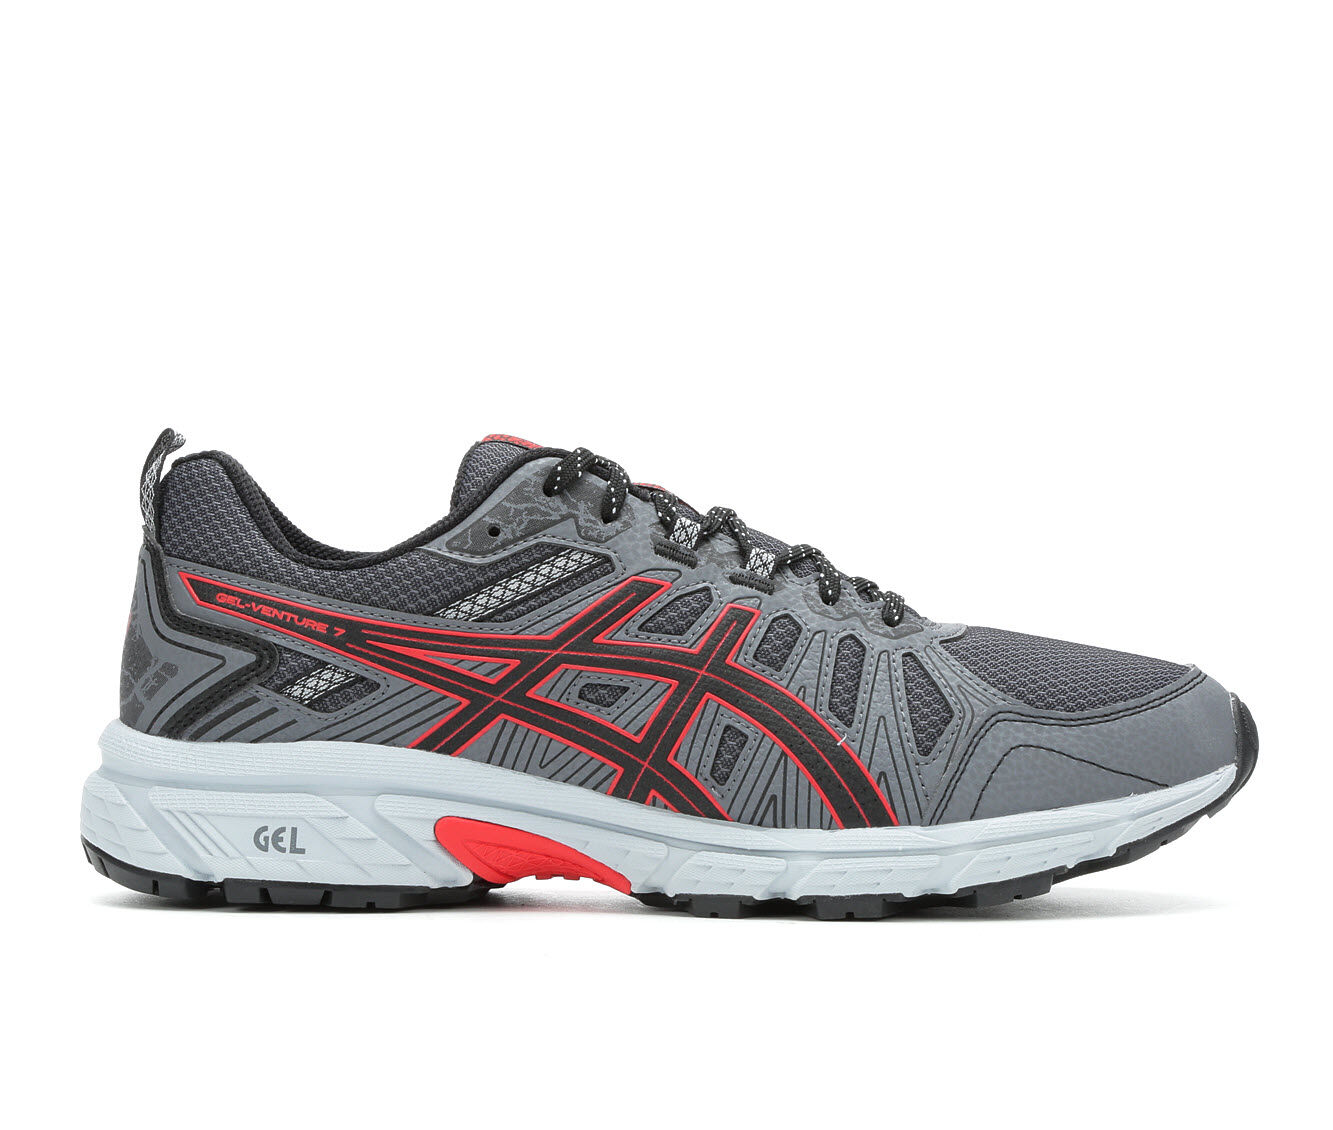 purchase comfortable Men's ASICS Gel Venture 7 Trail Running Shoes Gry/Blk/Red